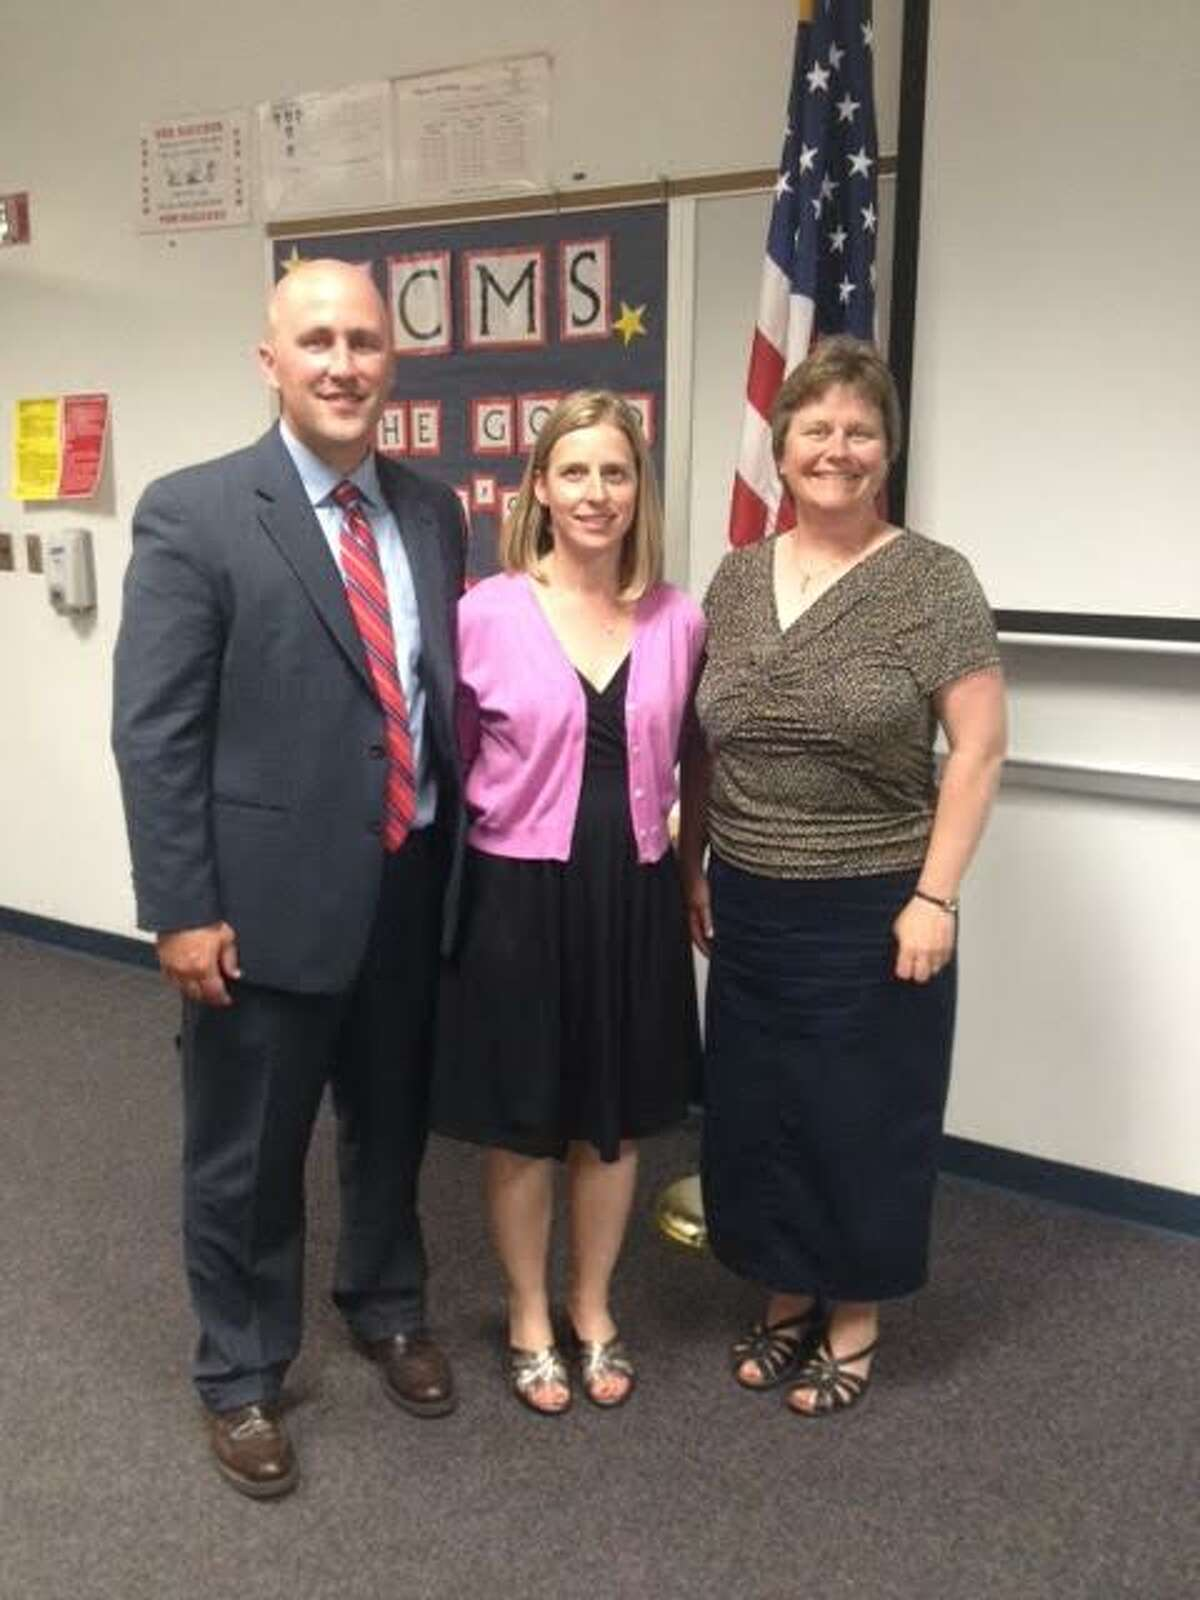 BIG WELCOME: New Benzie Central football coach and teacher Jason Katt (left) and new teacher Kylee Katt were welcomed to the community by Benzie Central Board of Education President Lorraine Nordbeck. (Courtesy photo)